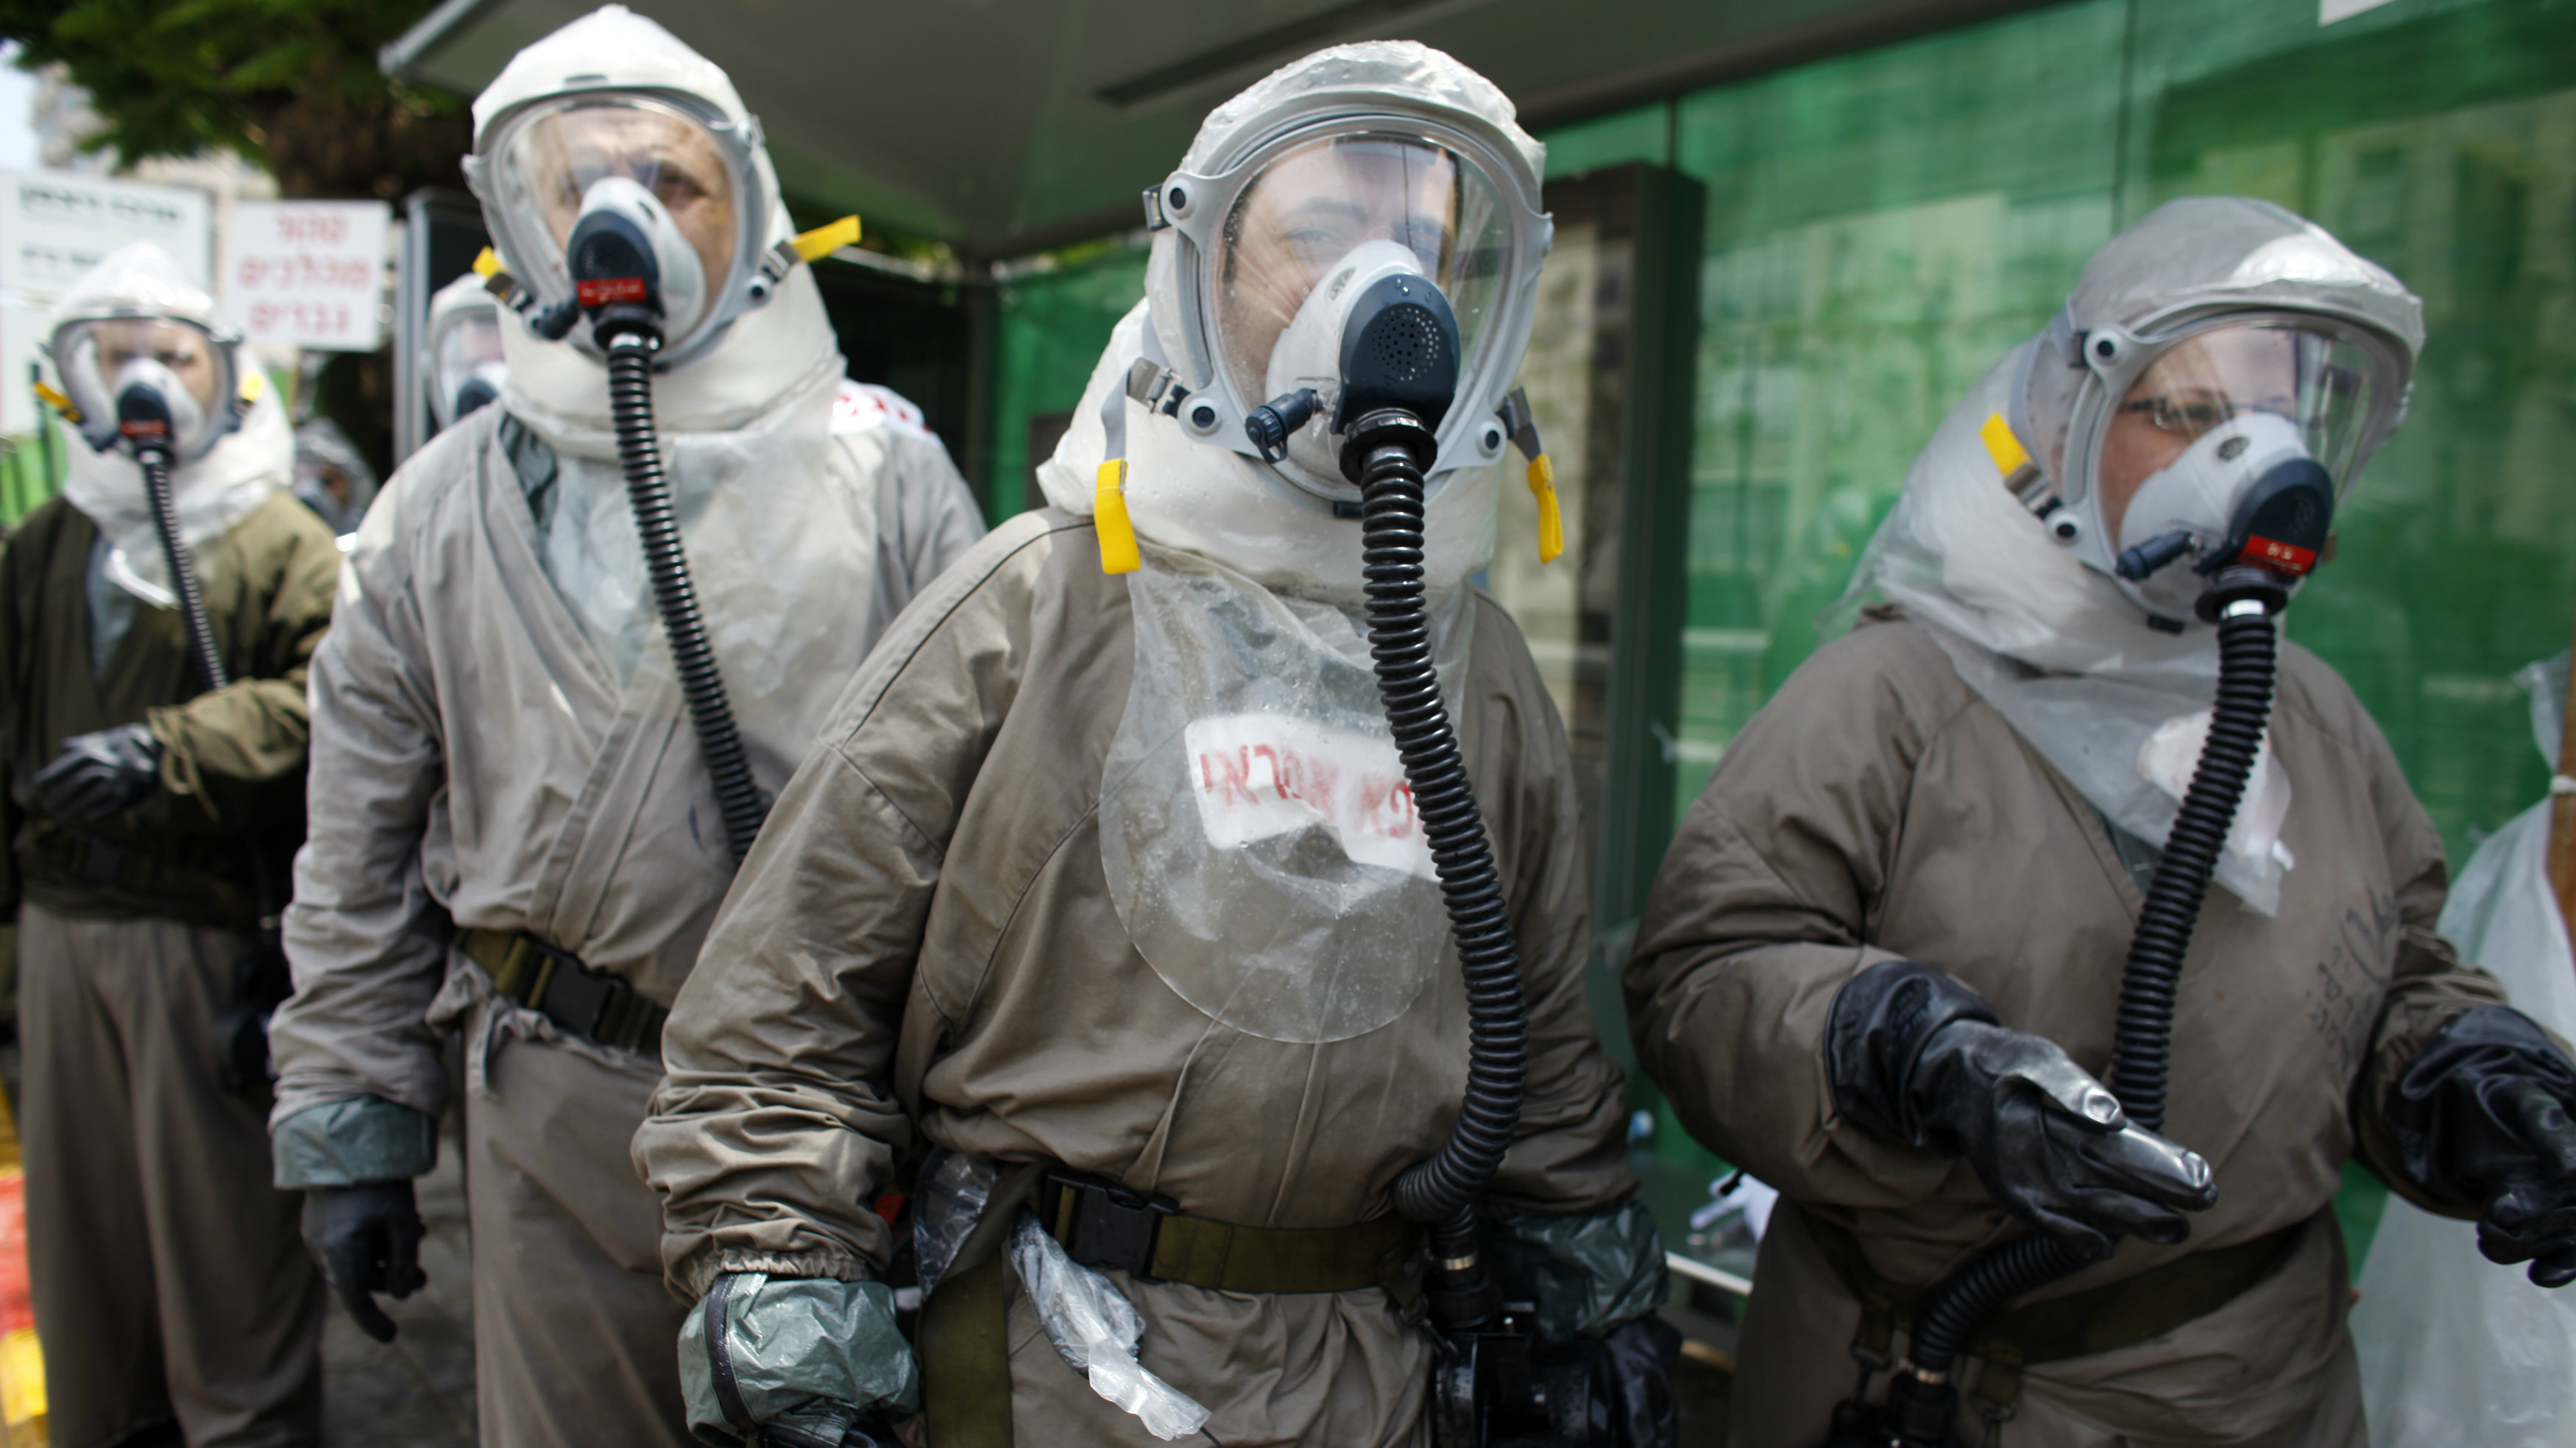 Hospital staff take part in a drill simulating a chemical warfare incident in Tel Aviv May 25, 2011.